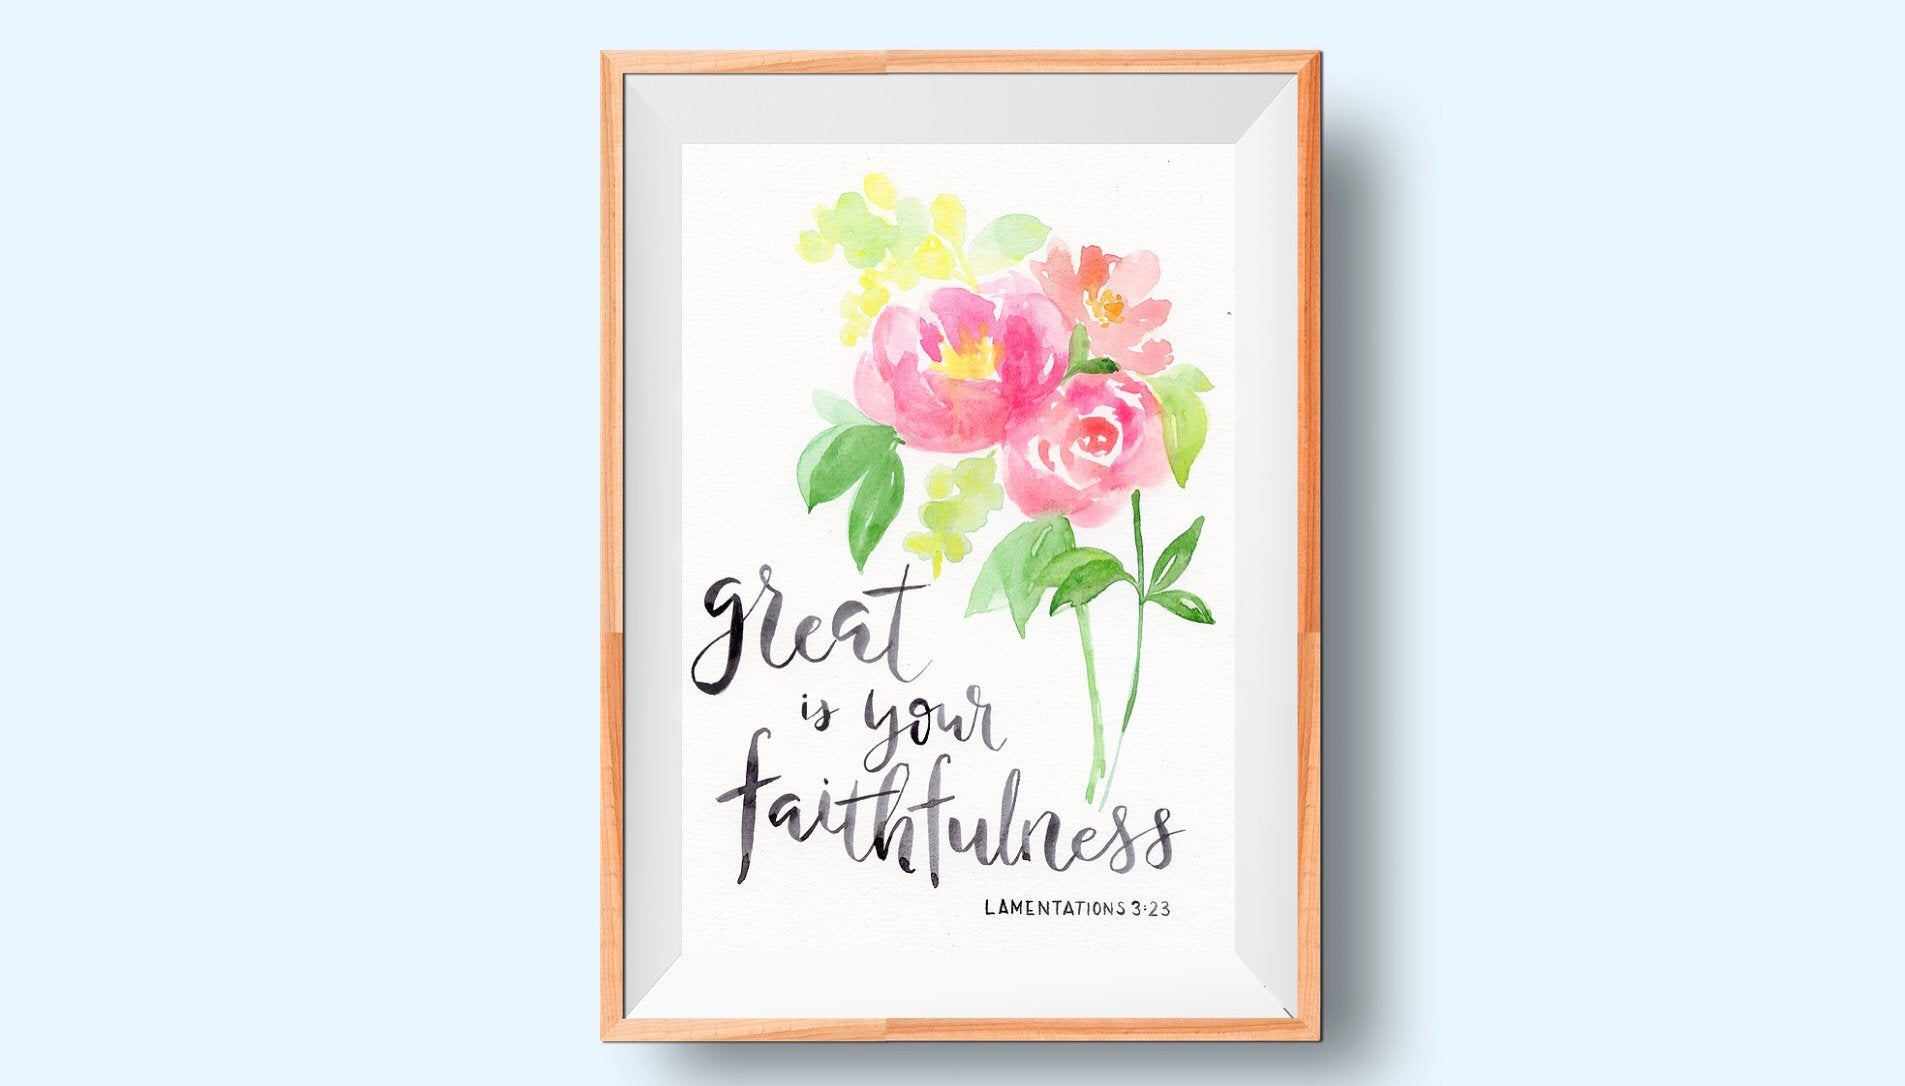 Faithfulness, Lamentations 3:23